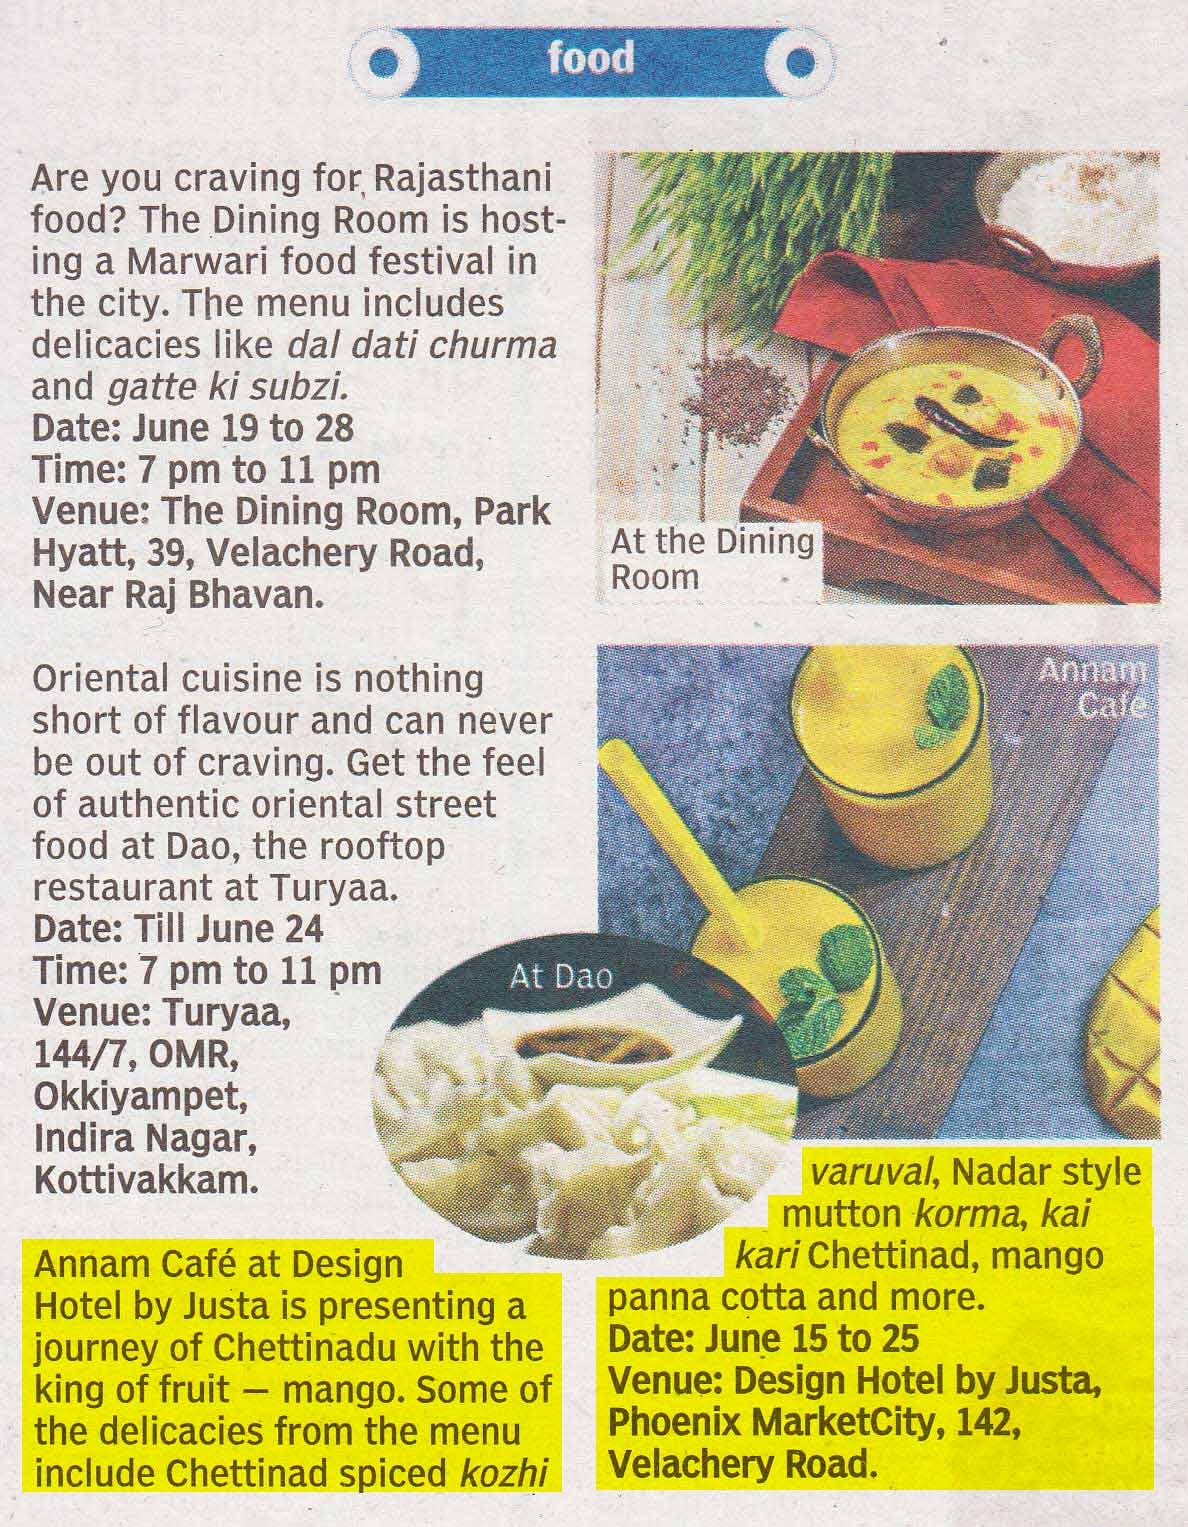 annam-cafe-featured-in-deccan-chronicals